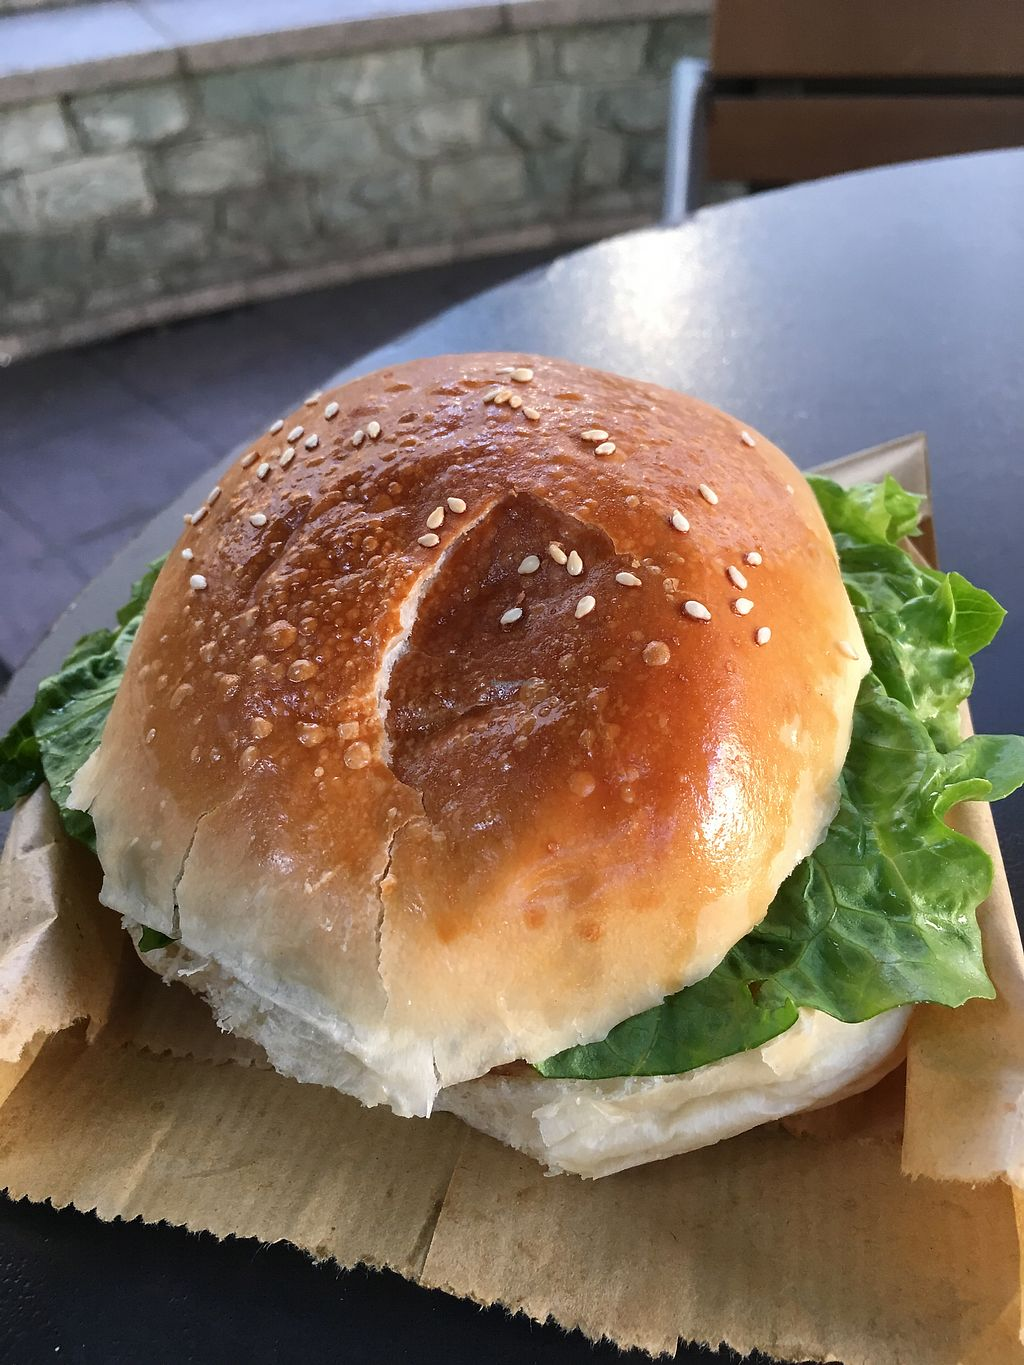 """Photo of Ting Ting Cafe  by <a href=""""/members/profile/Veg4Jay"""">Veg4Jay</a> <br/>Quinoa Veggie Burger <br/> November 28, 2017  - <a href='/contact/abuse/image/58022/329917'>Report</a>"""